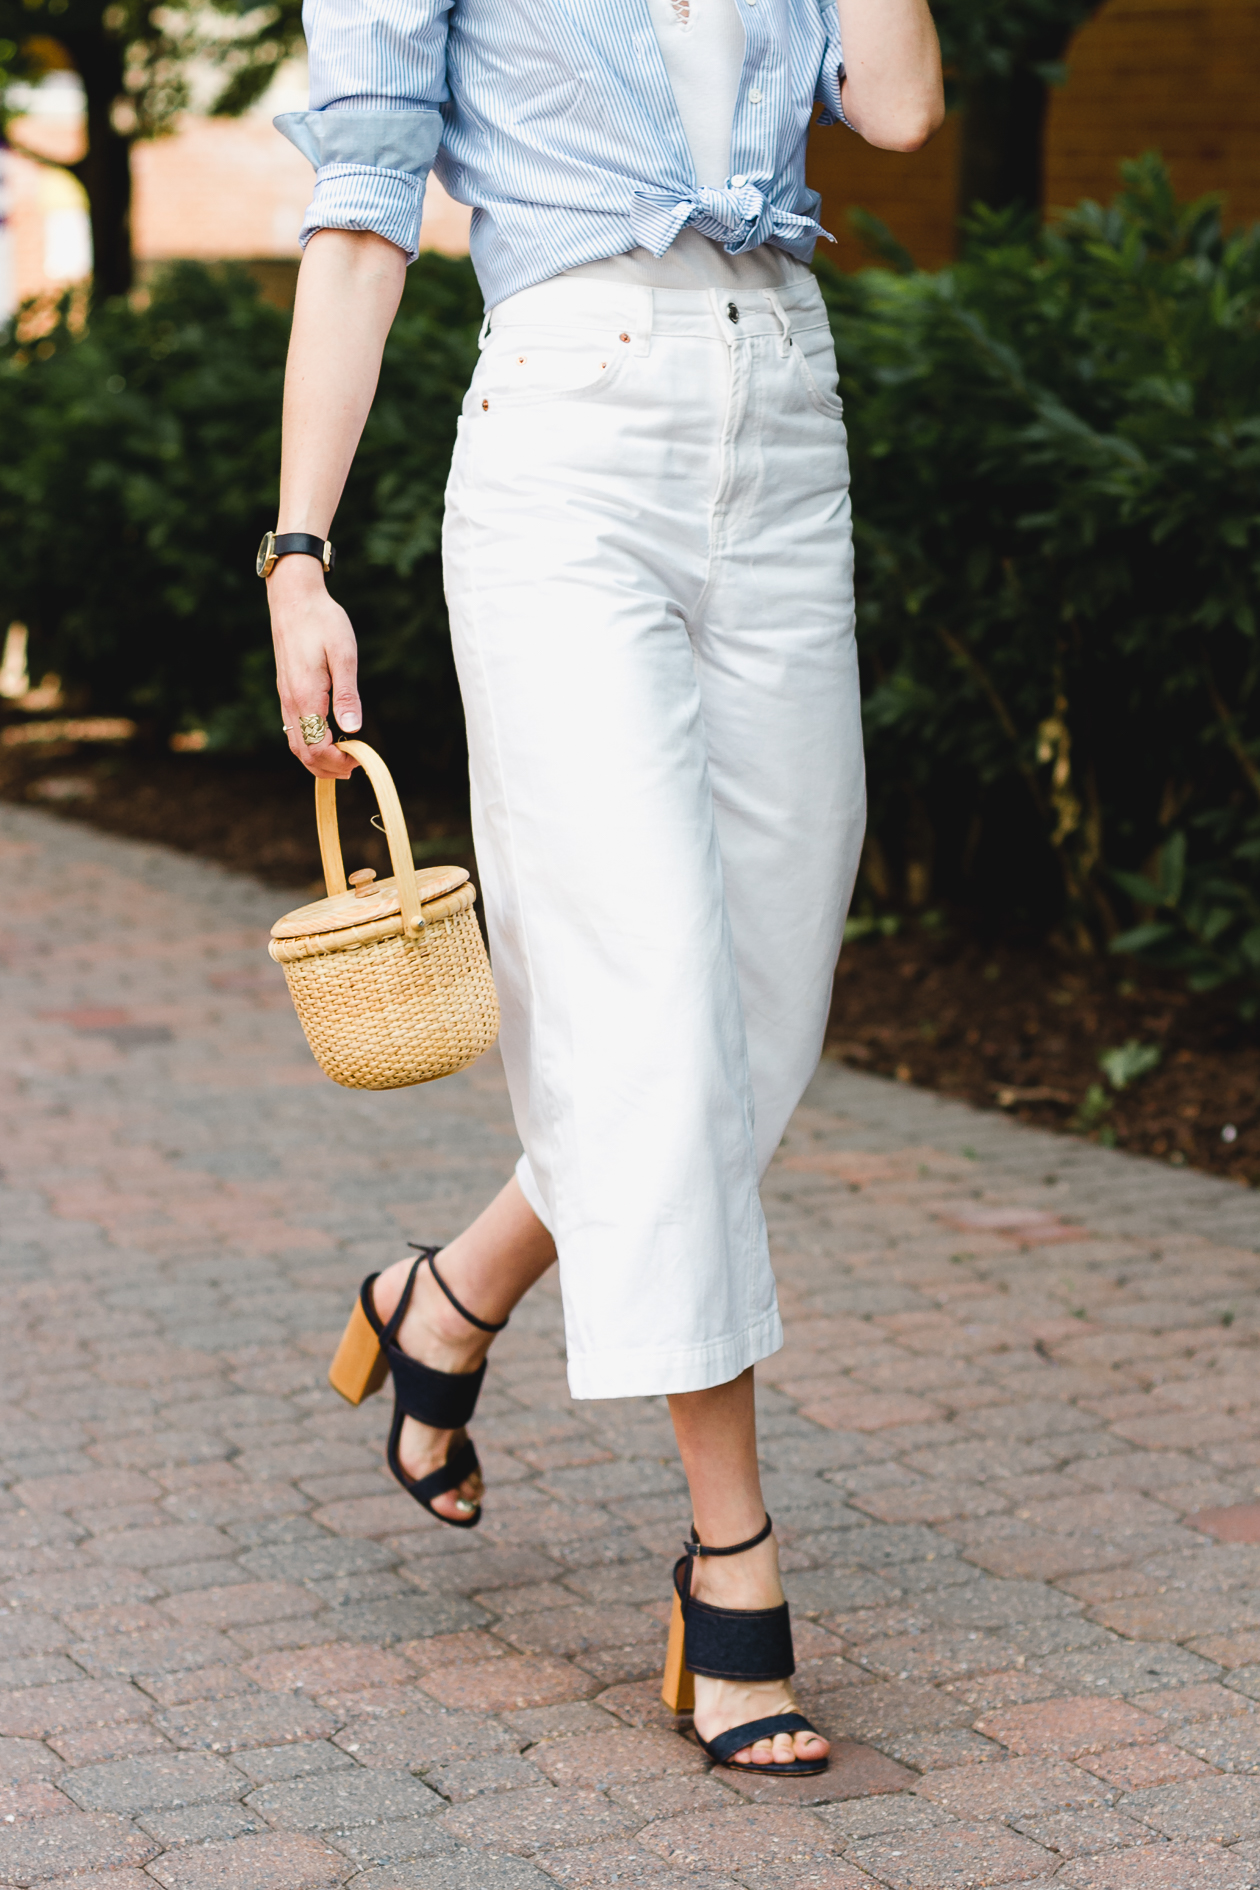 Topshop white jeans and Tabitha Simmons sandals